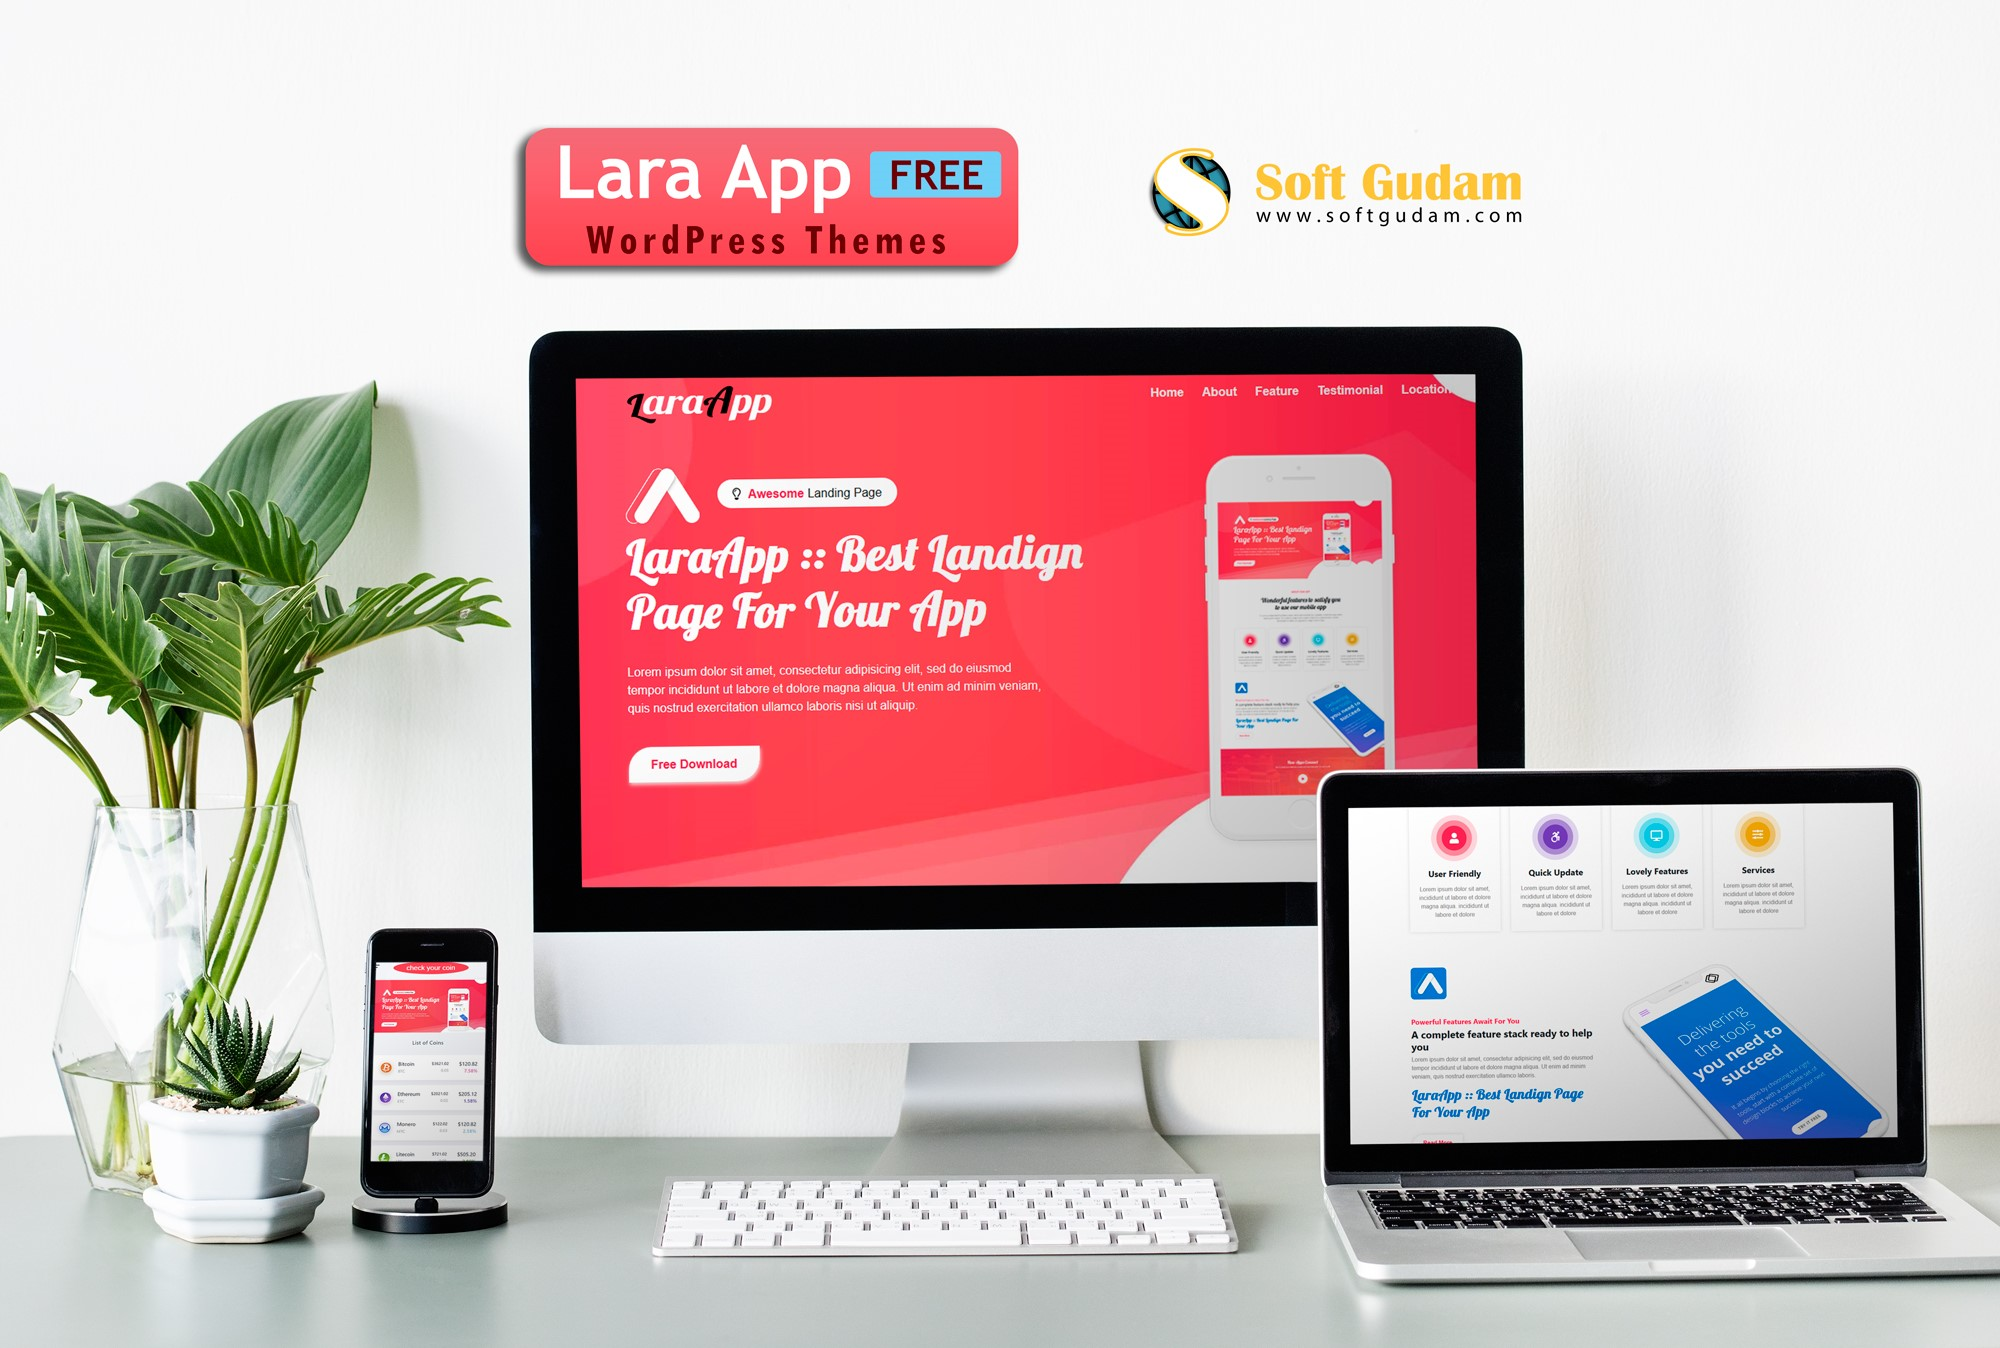 Lara App Download Free Wordpree Themes | SoftGudam